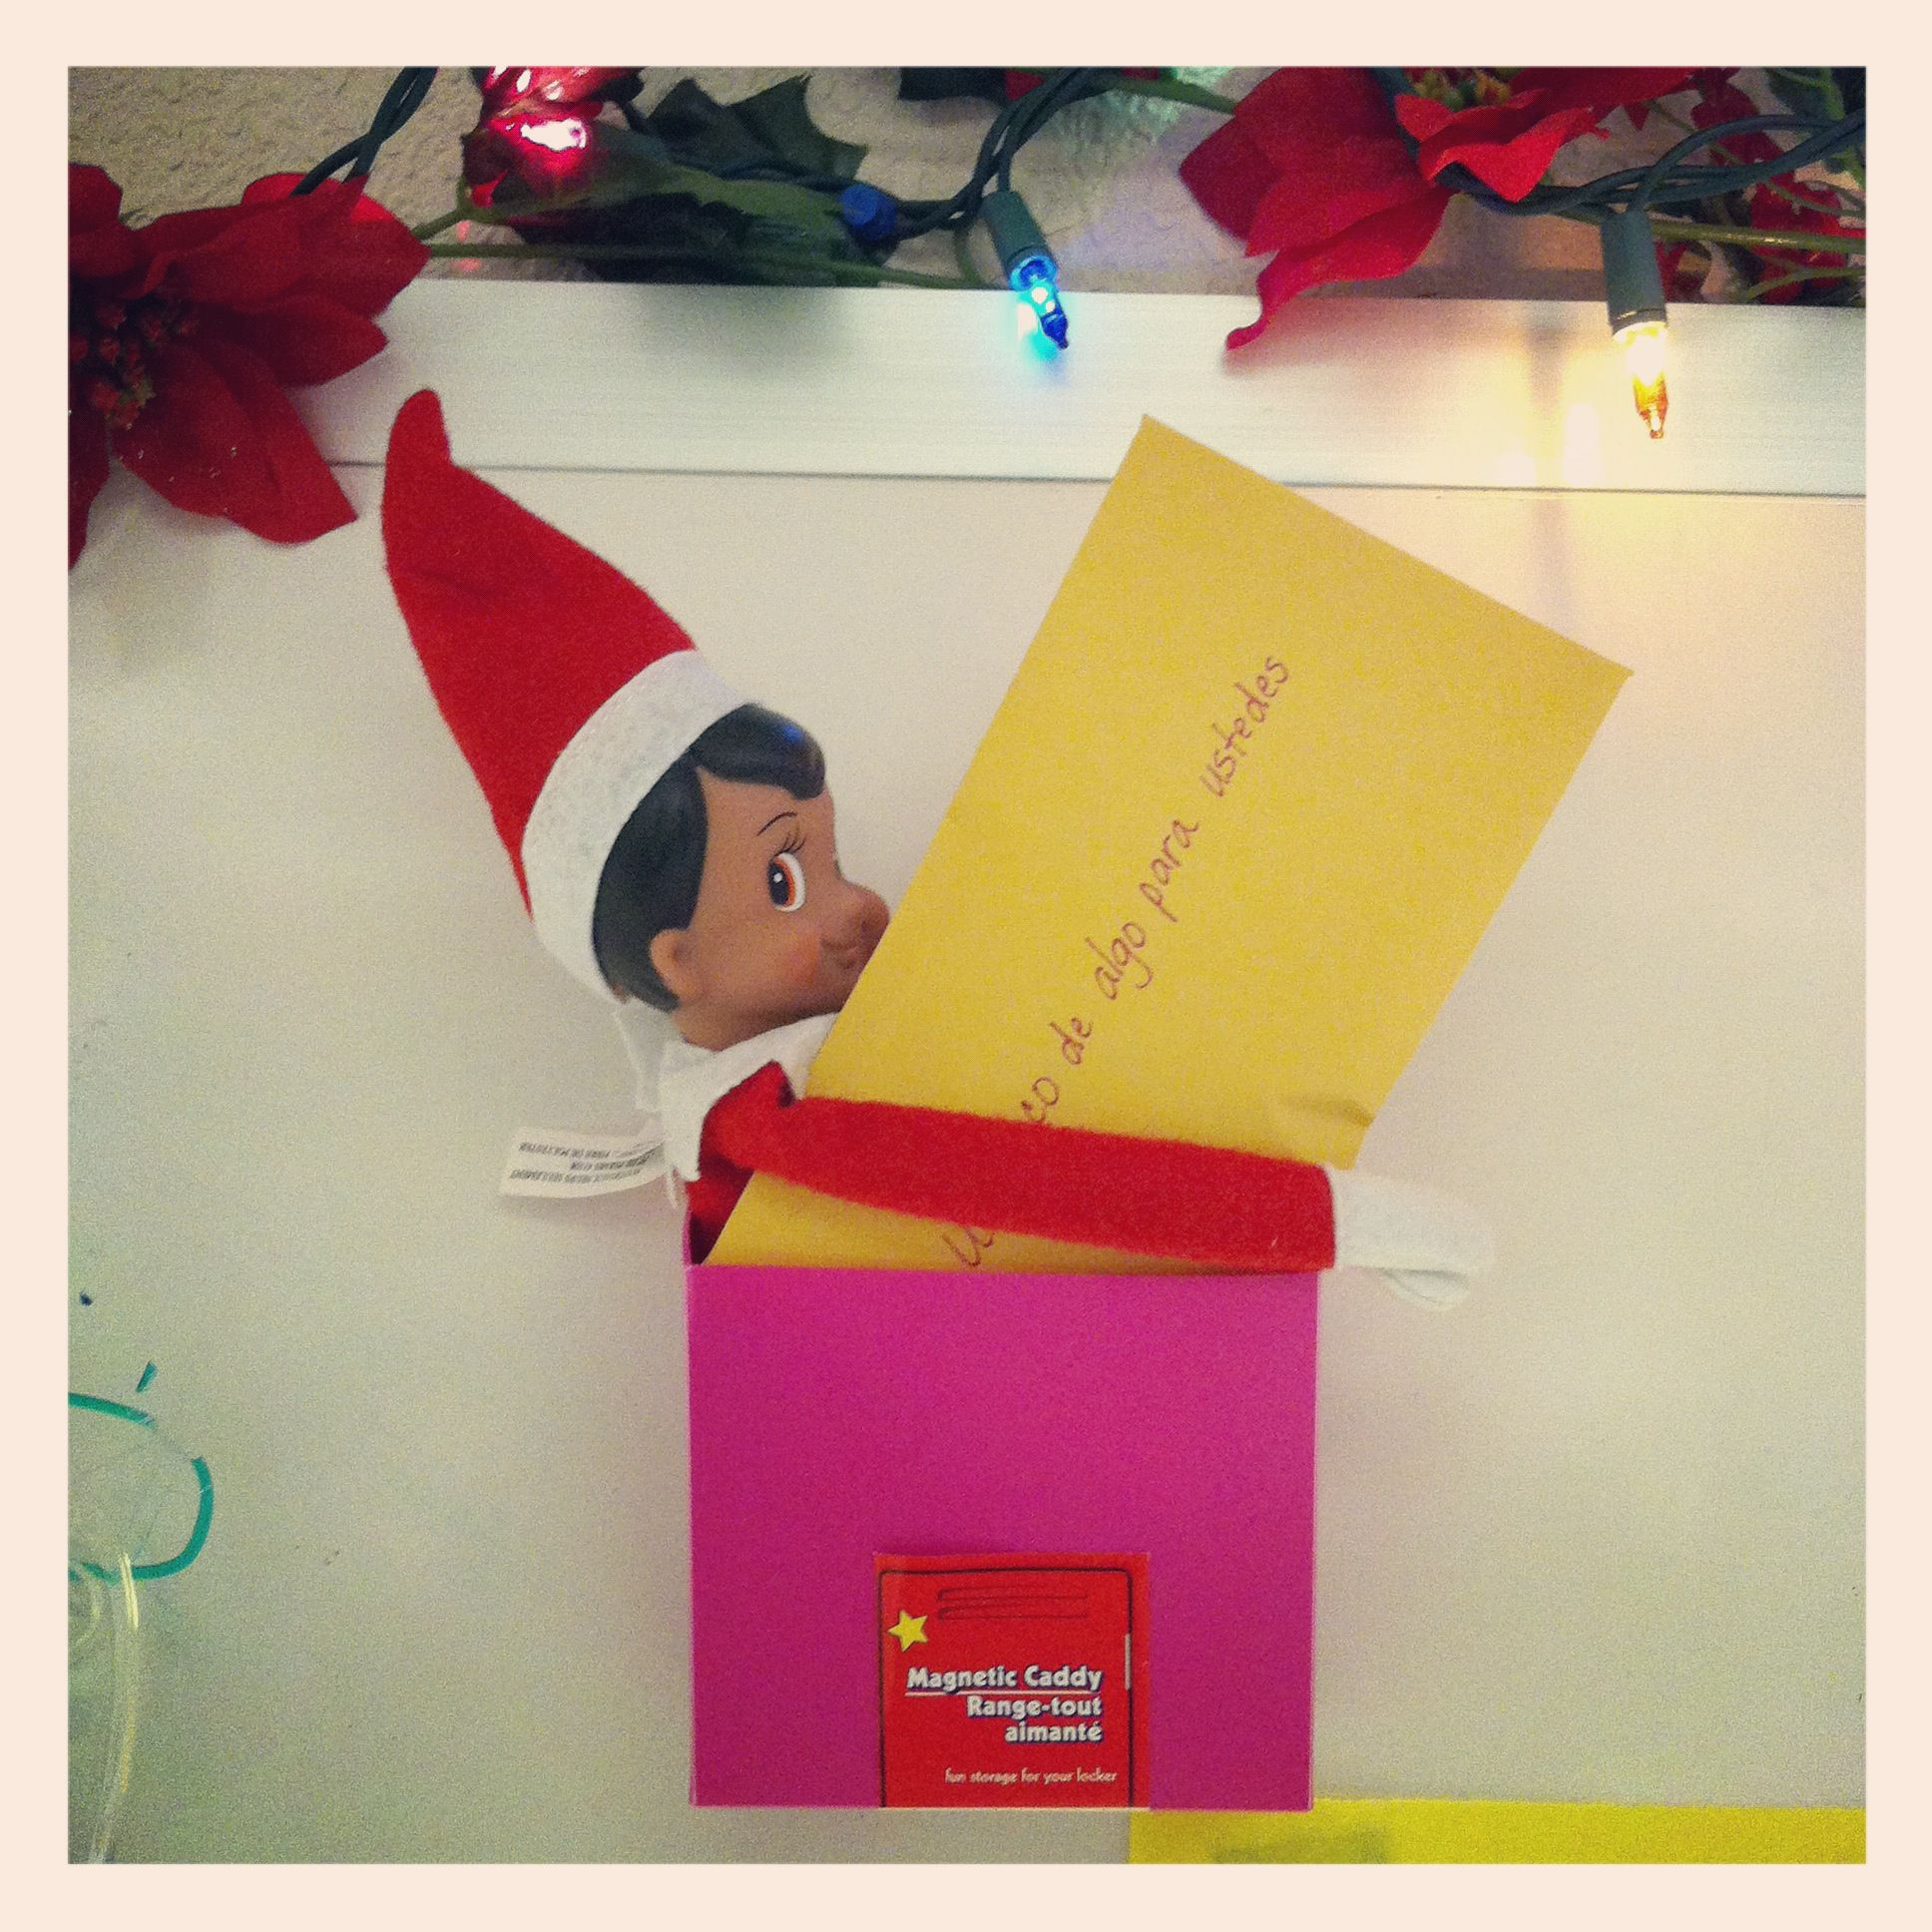 Have a letter delivered from santa asking the kids to write him a letter of what they want for christmas